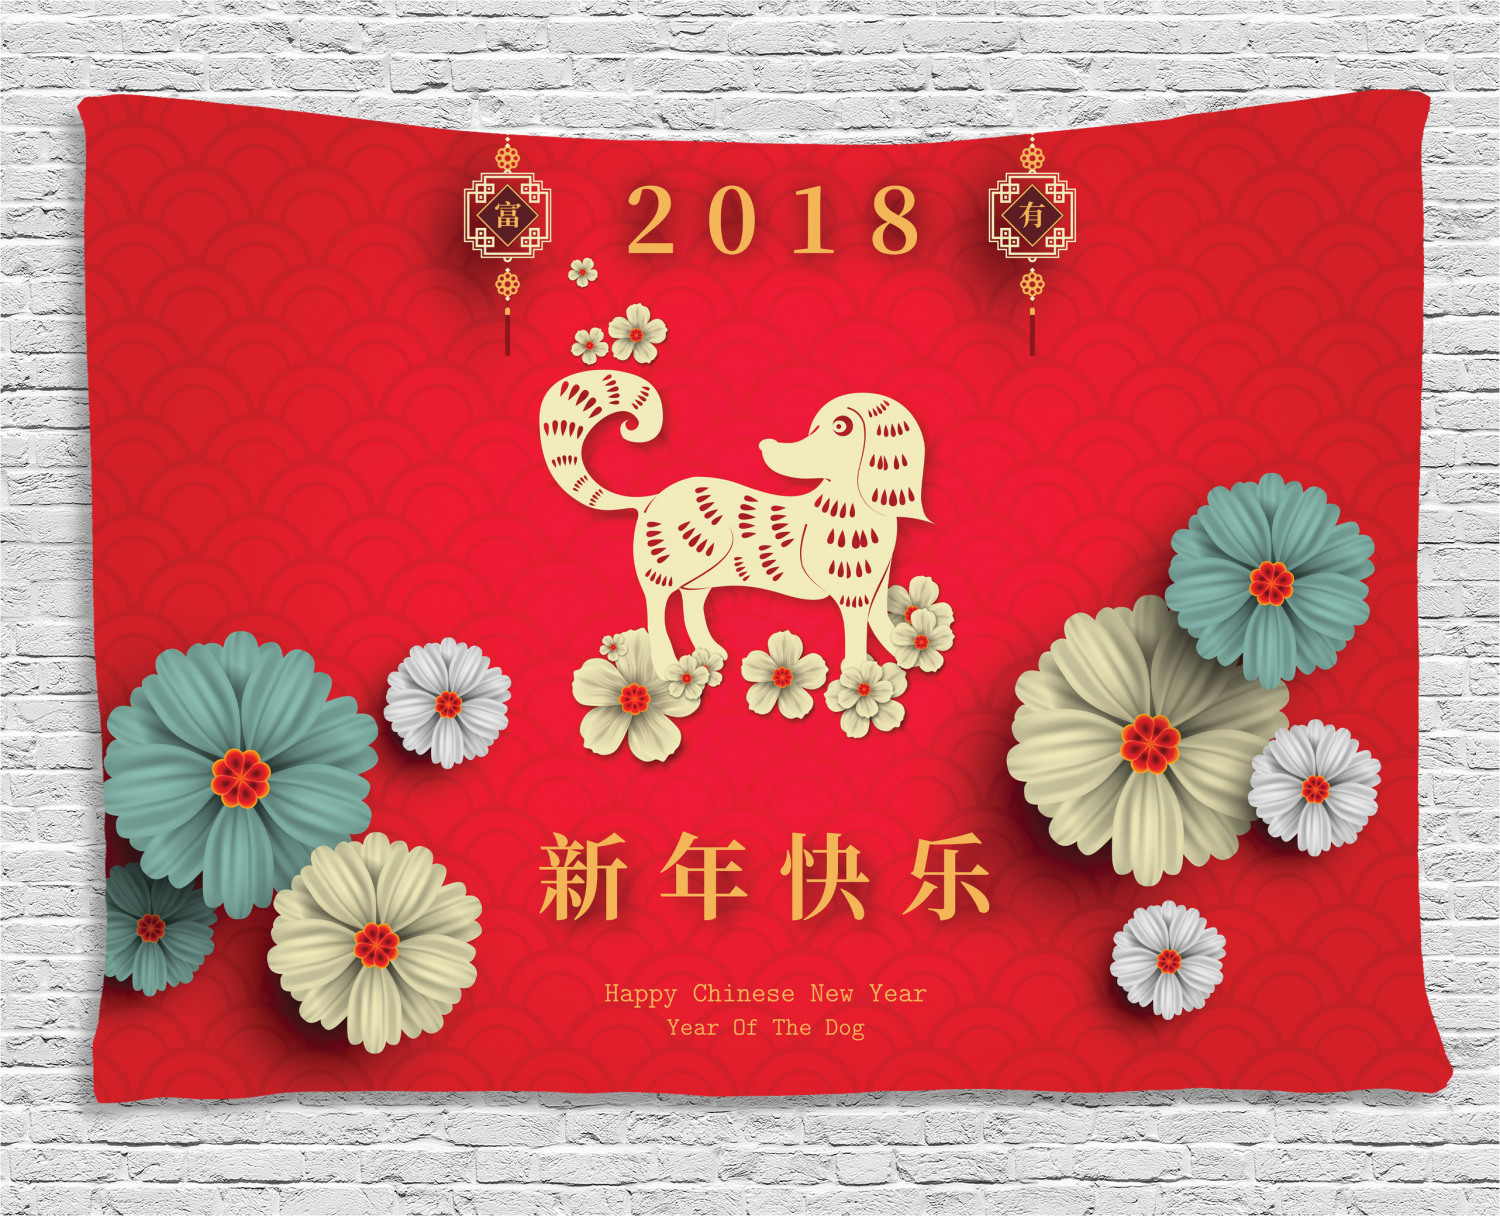 Floral Arrangement with Far Lunar Calendar Pattern 2018 New Year Background for Baby Shower Birthday Wedding Bridal Shower Party Decoration Photo Studio Year of The Dog 8x10 FT Photography Backdrop